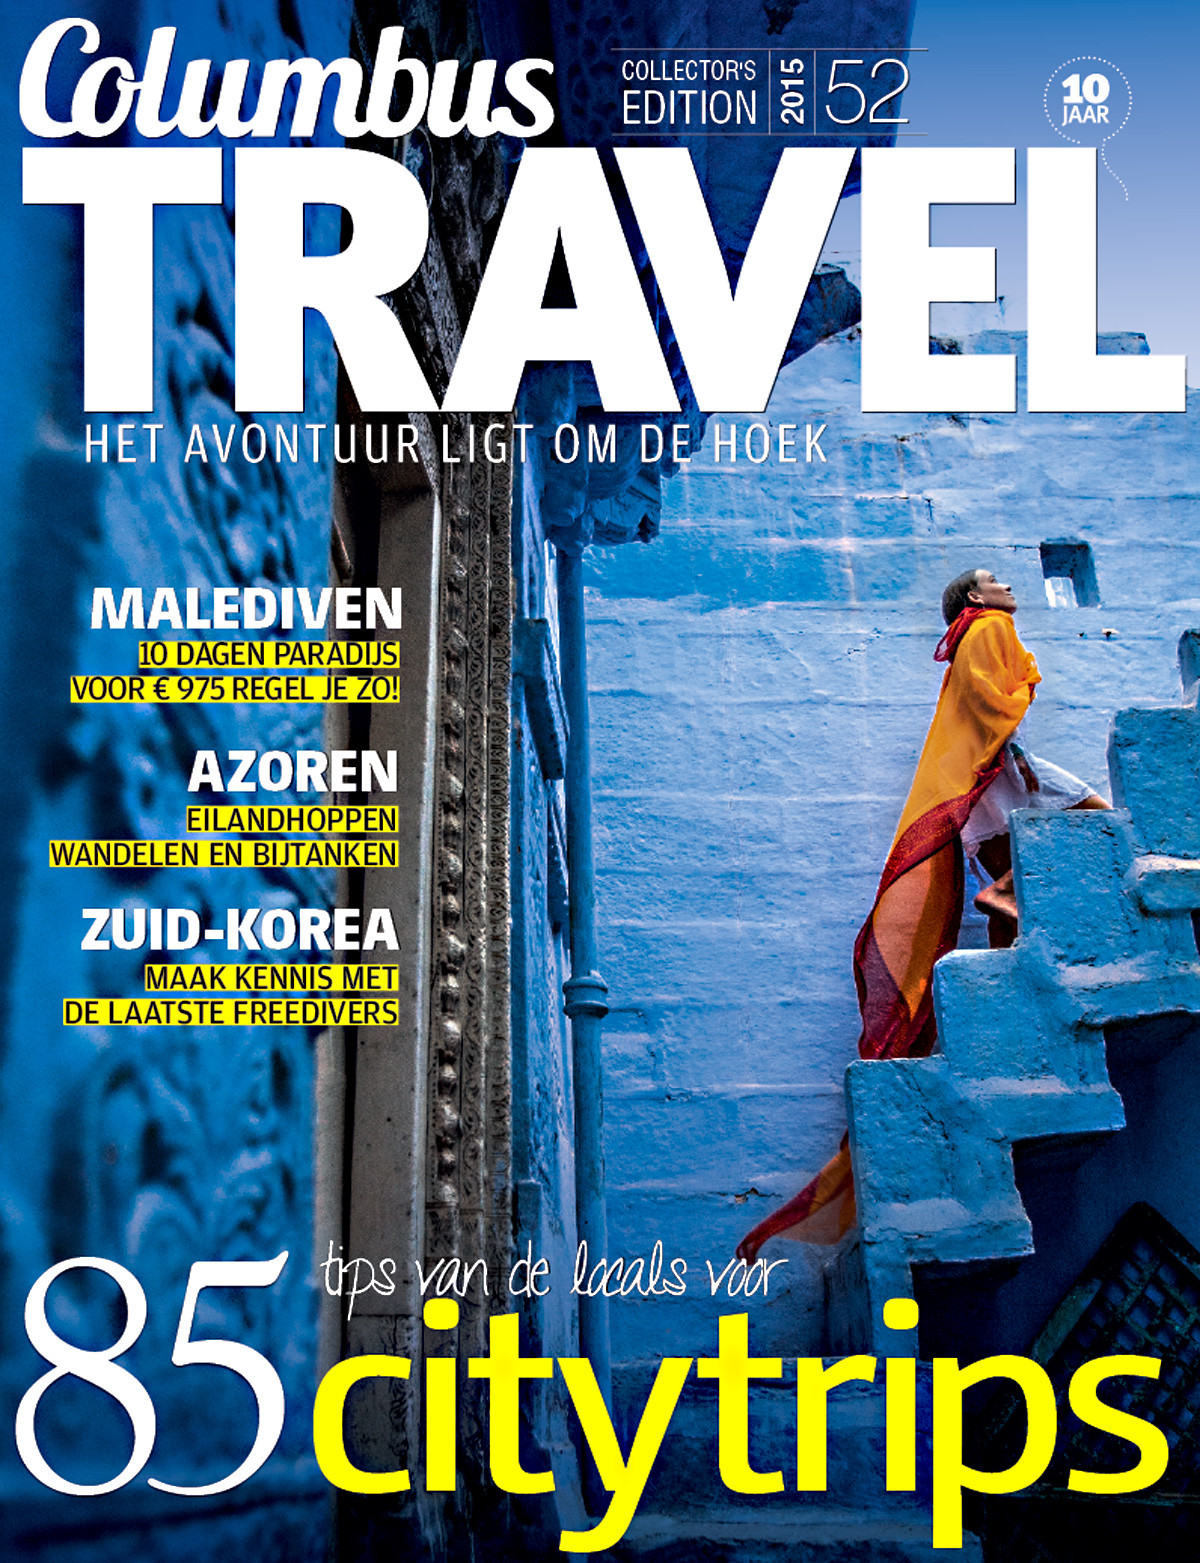 Columbus Travel magazine cover 52